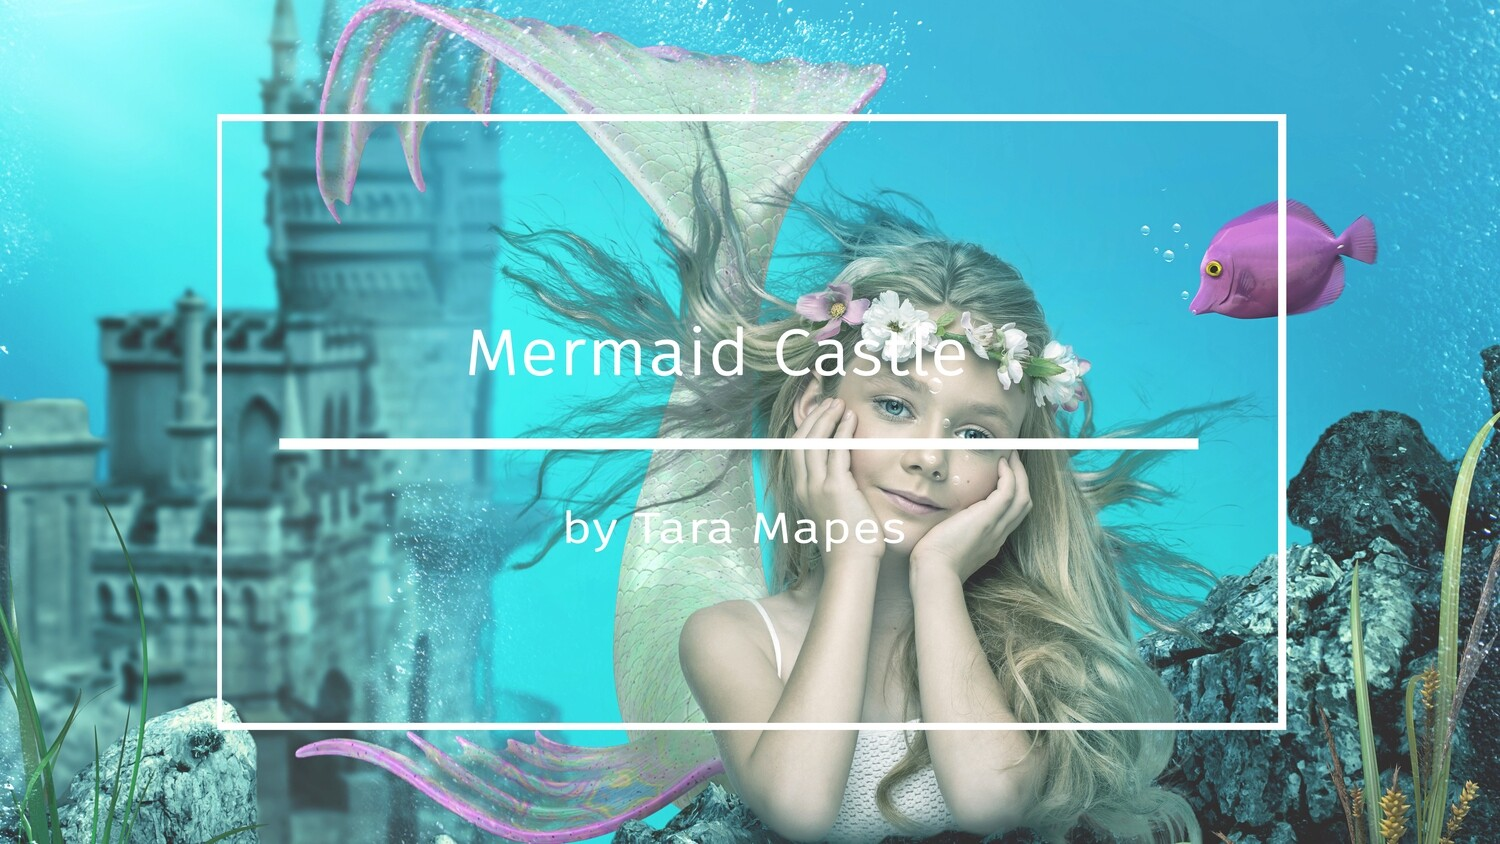 Photoshop Tutorial on How To Extract and Blend Your Subject into the Mermaid Castle Background in Photoshop by Tara Mapes